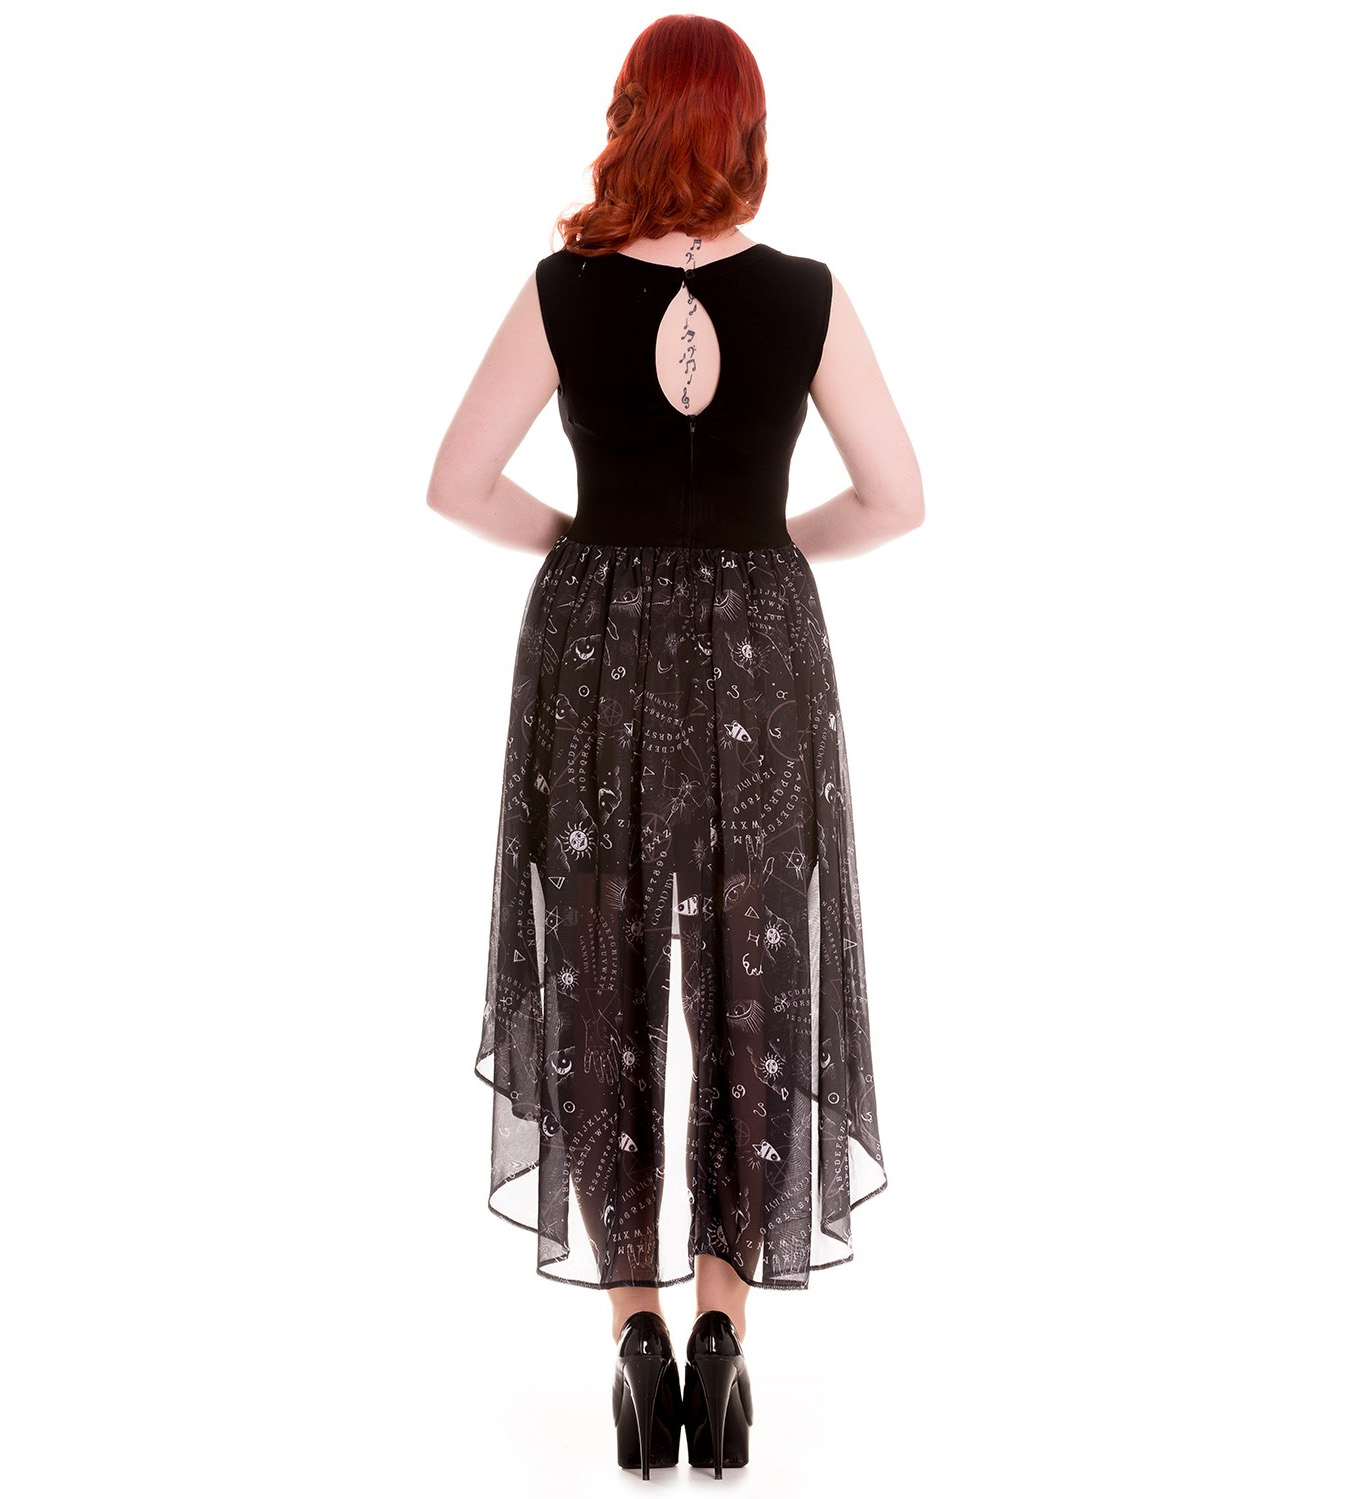 HELL-BUNNY-Spin-Doctor-Goth-Black-Witch-Ouija-SPIRIT-Dress-All-Sizes thumbnail 33